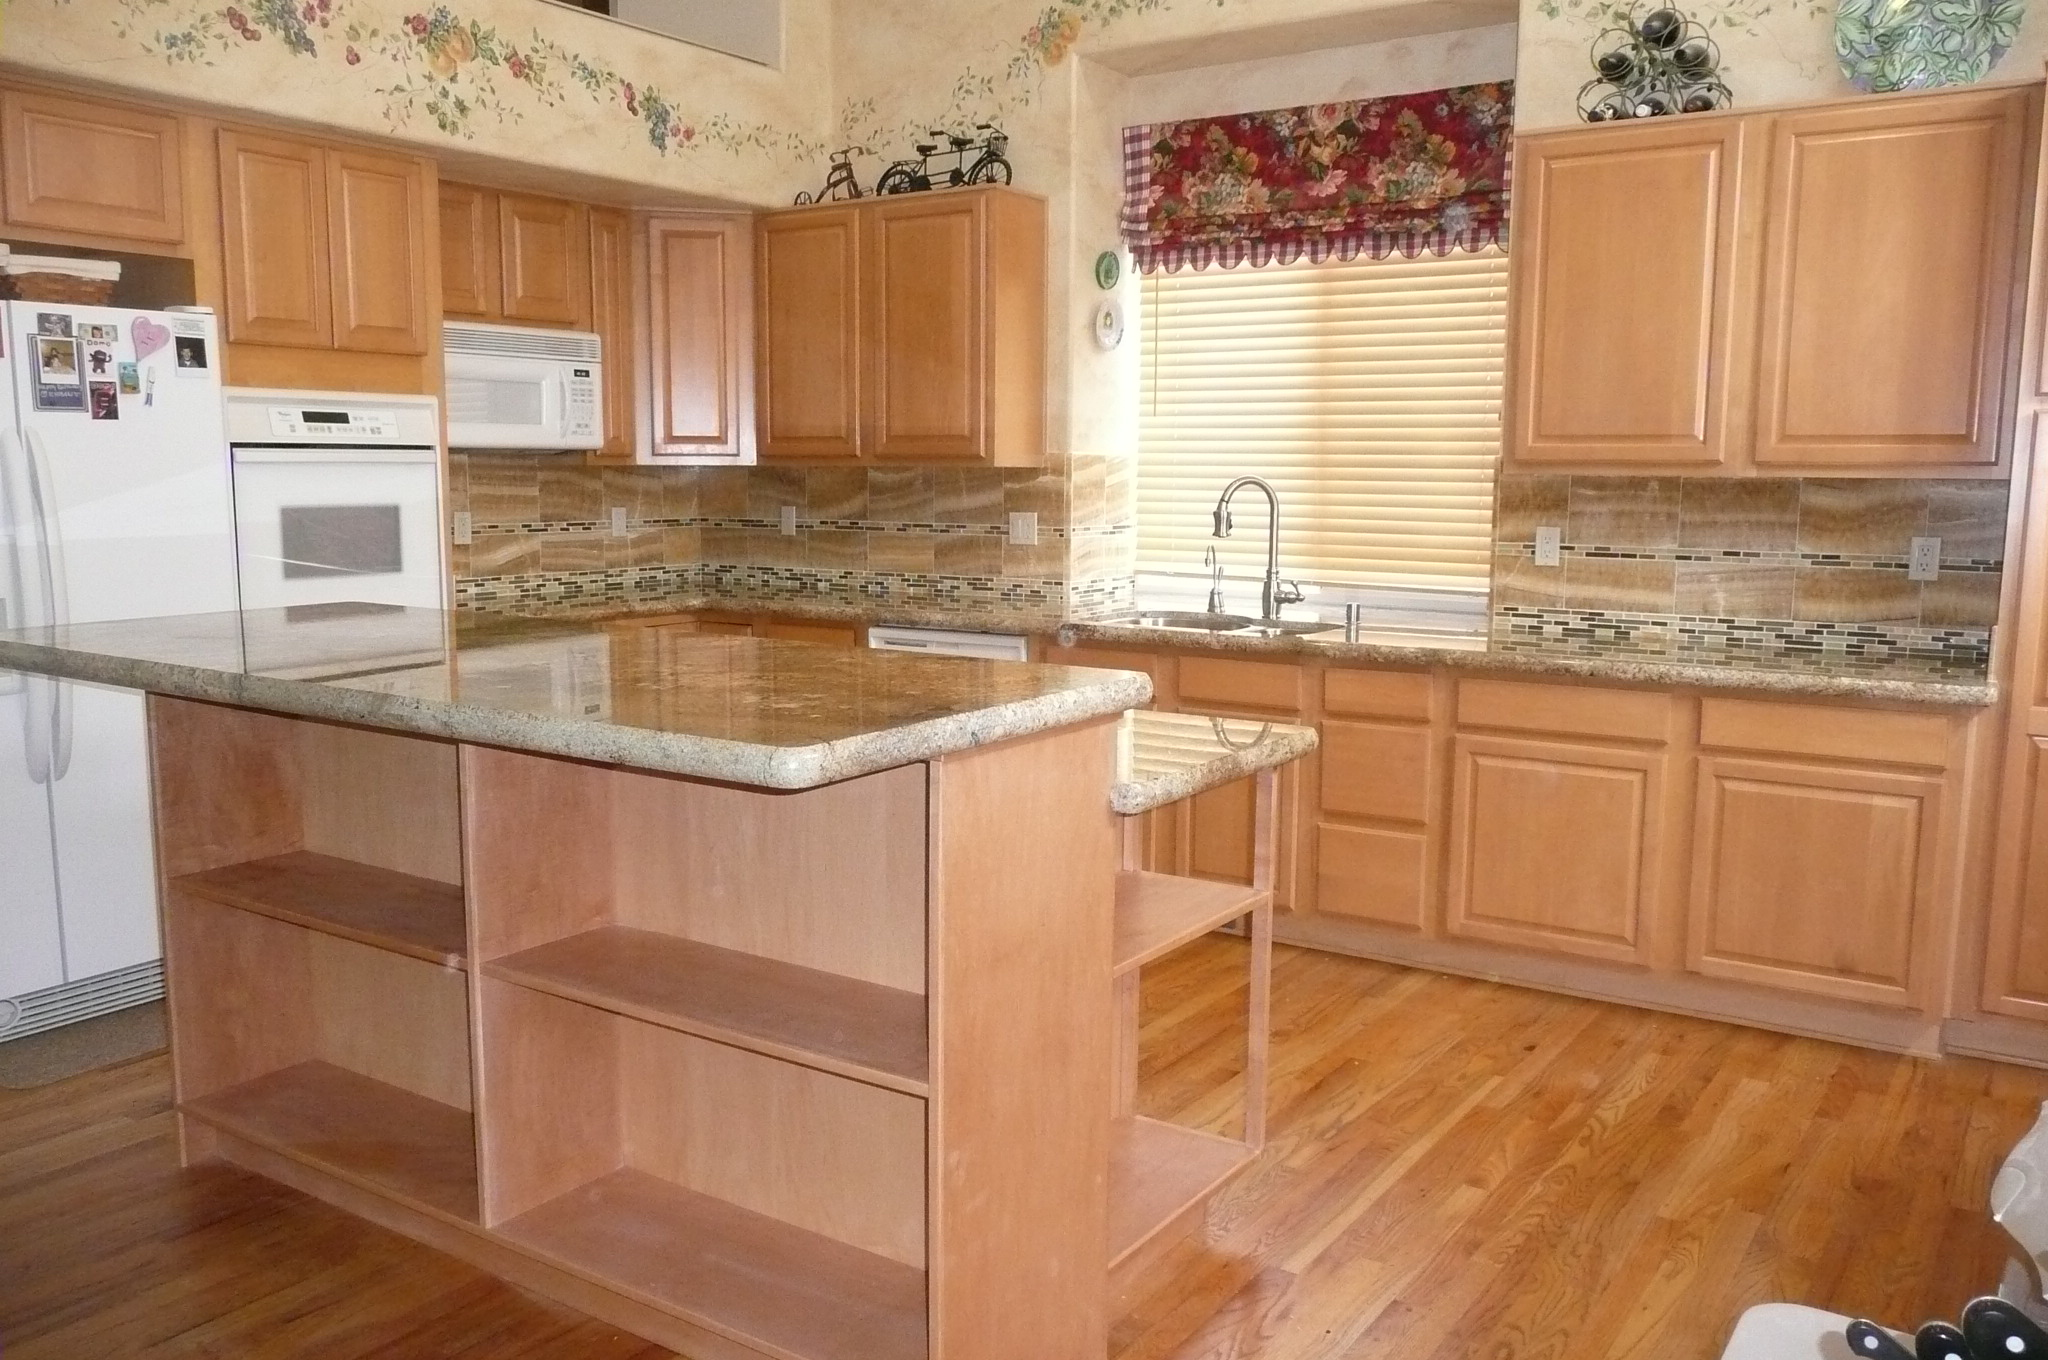 7 things to consider before refinishing your kitchen cabinets restaining kitchen cabinets 7 Things to Consider Before Refinishing Your Kitchen Cabinets